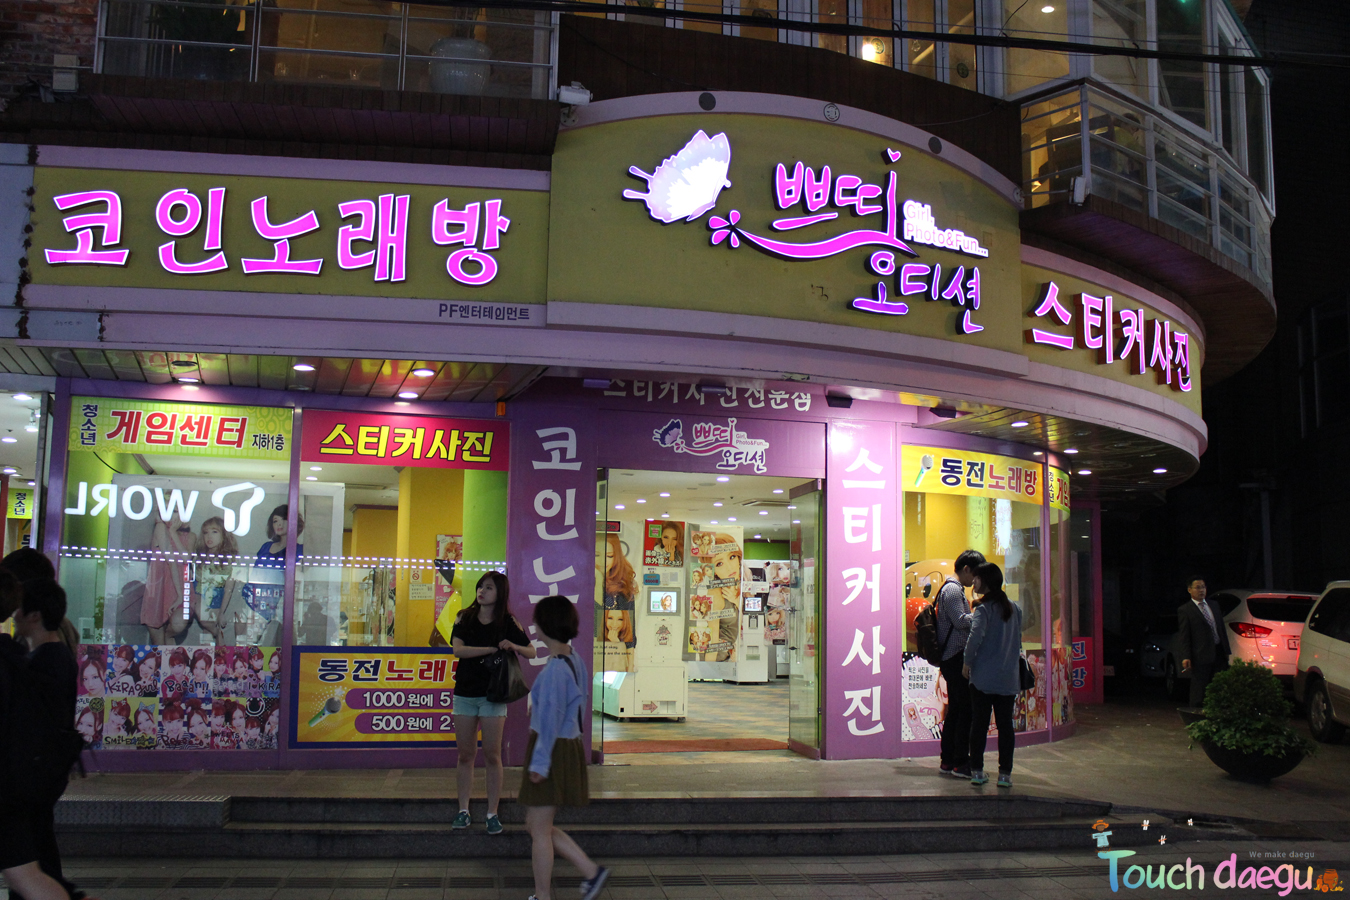 The exterior of the sticker photo studio